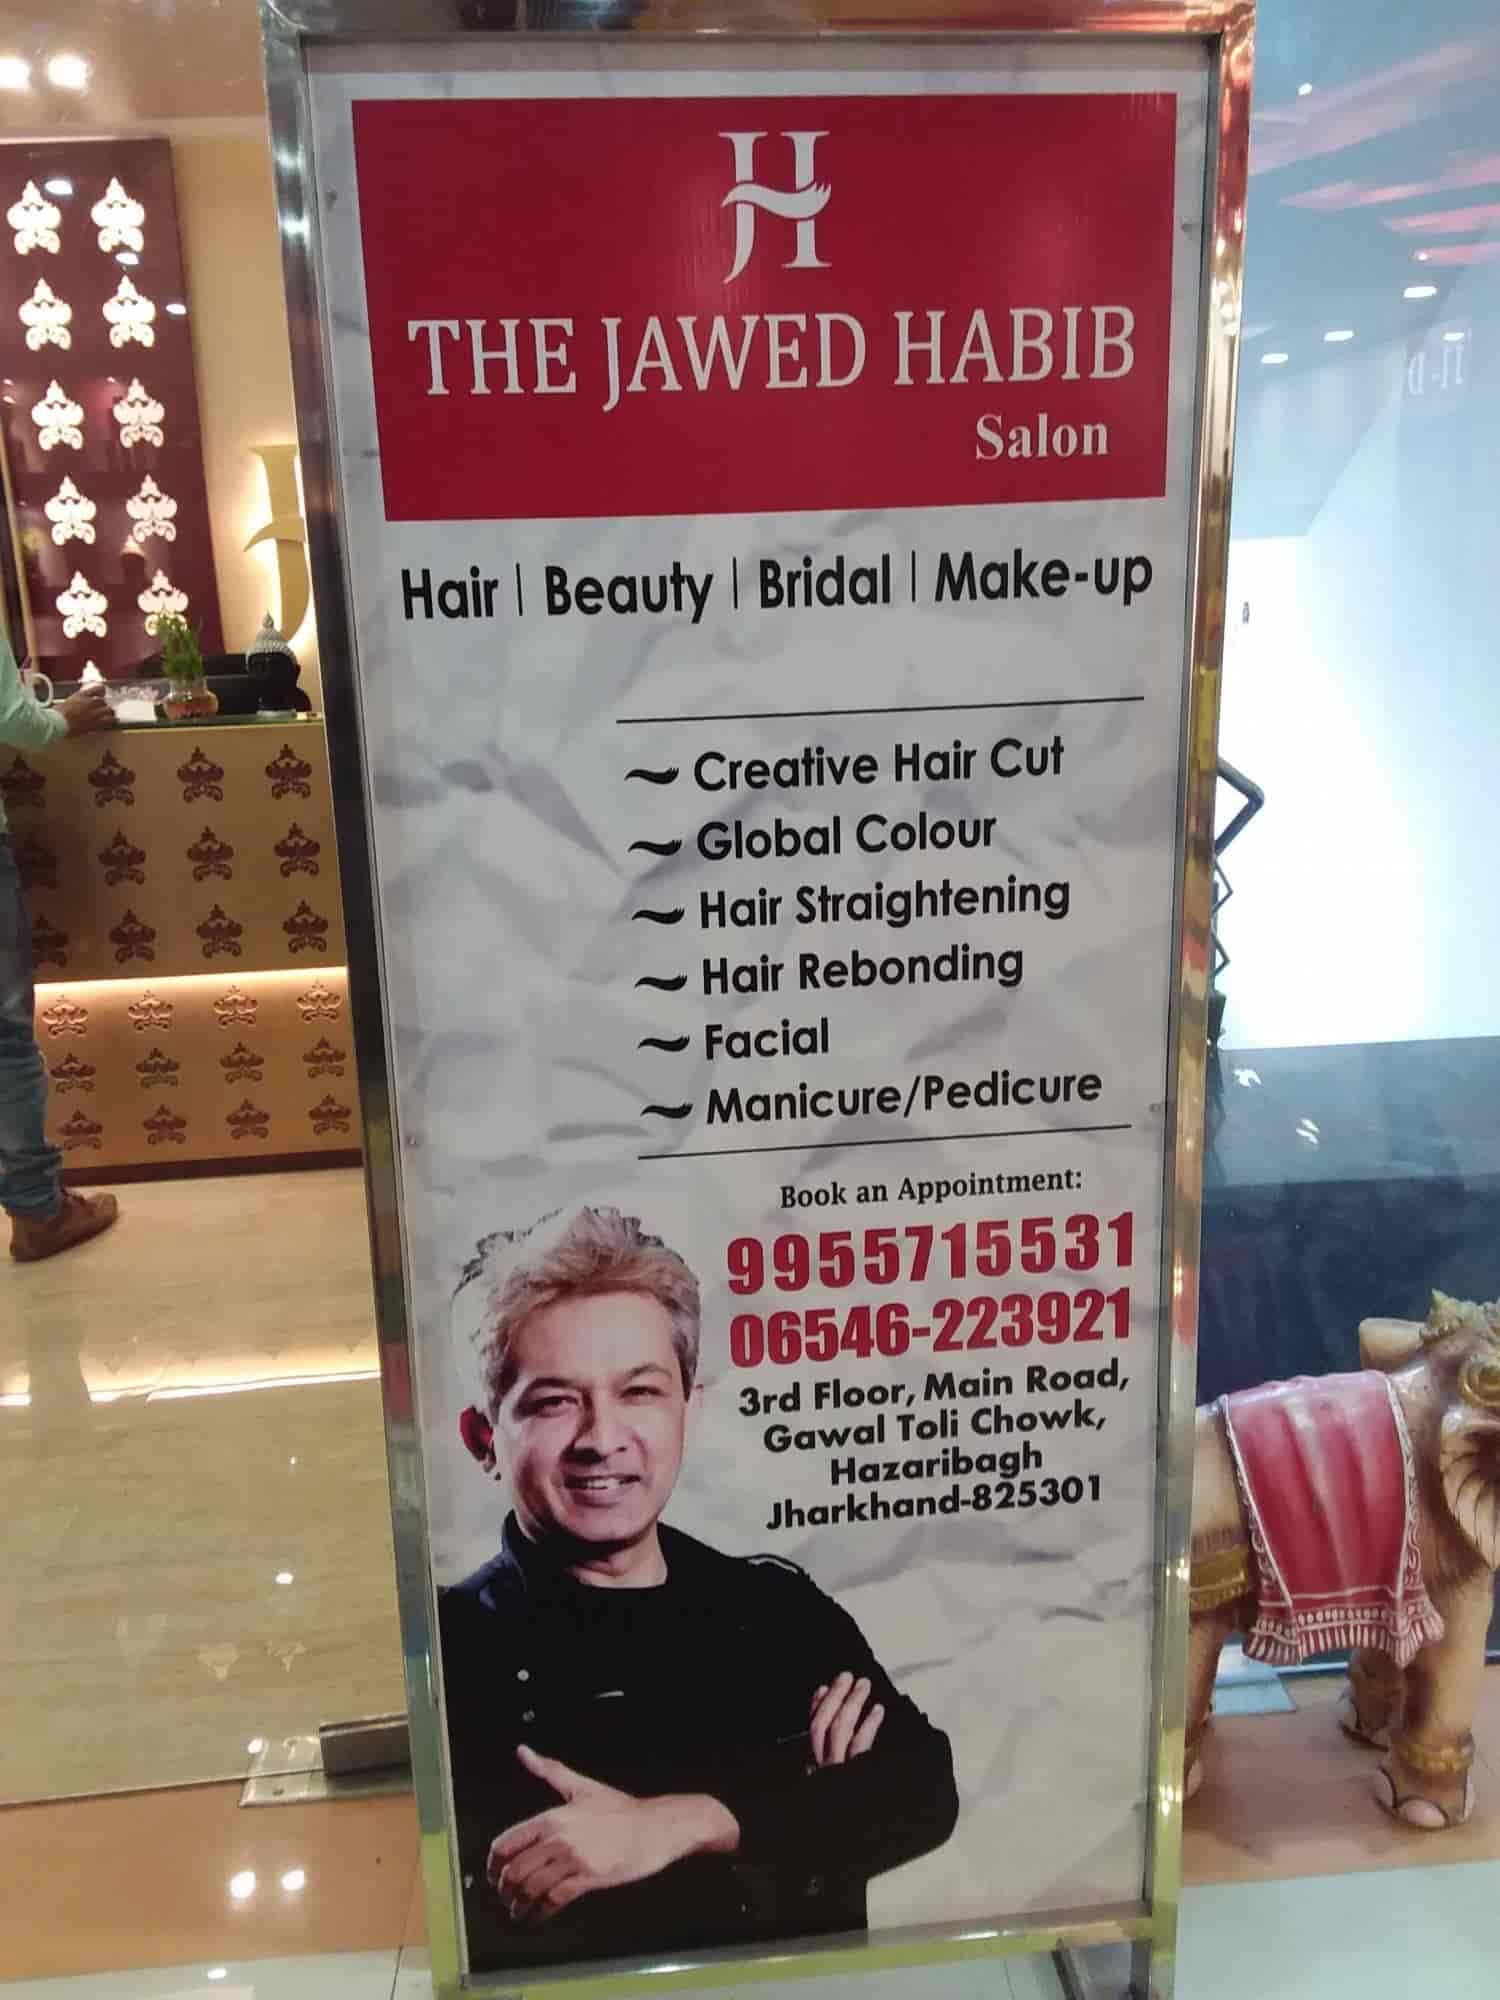 The Jawed Habib Salon Beauty Parlours In Hazaribagh Justdial